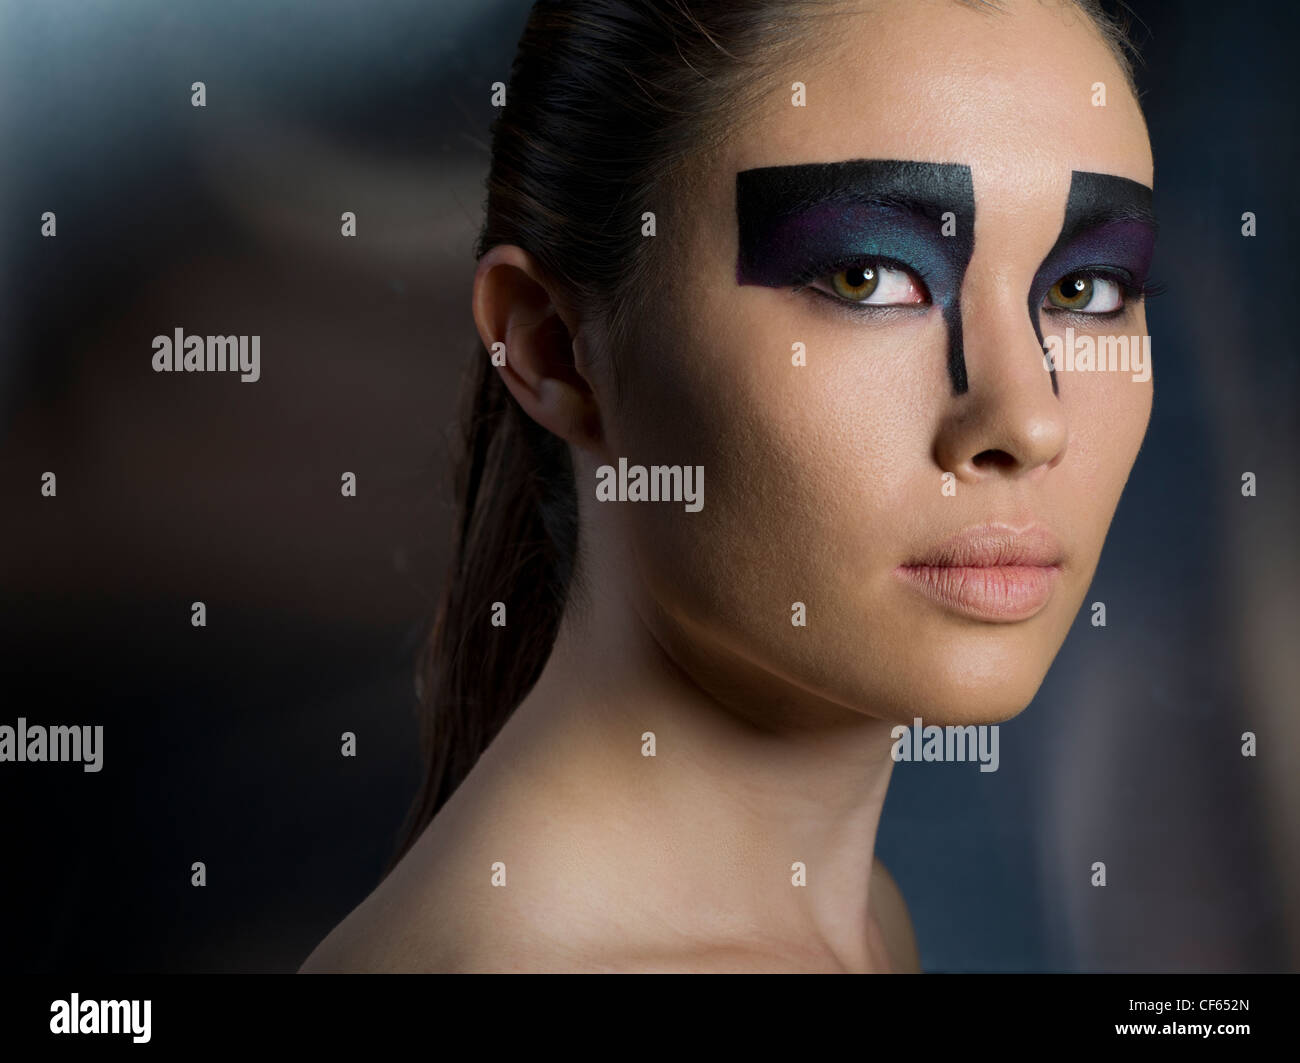 Futuristic makeup eyeshadow on Asian model - Stock Image